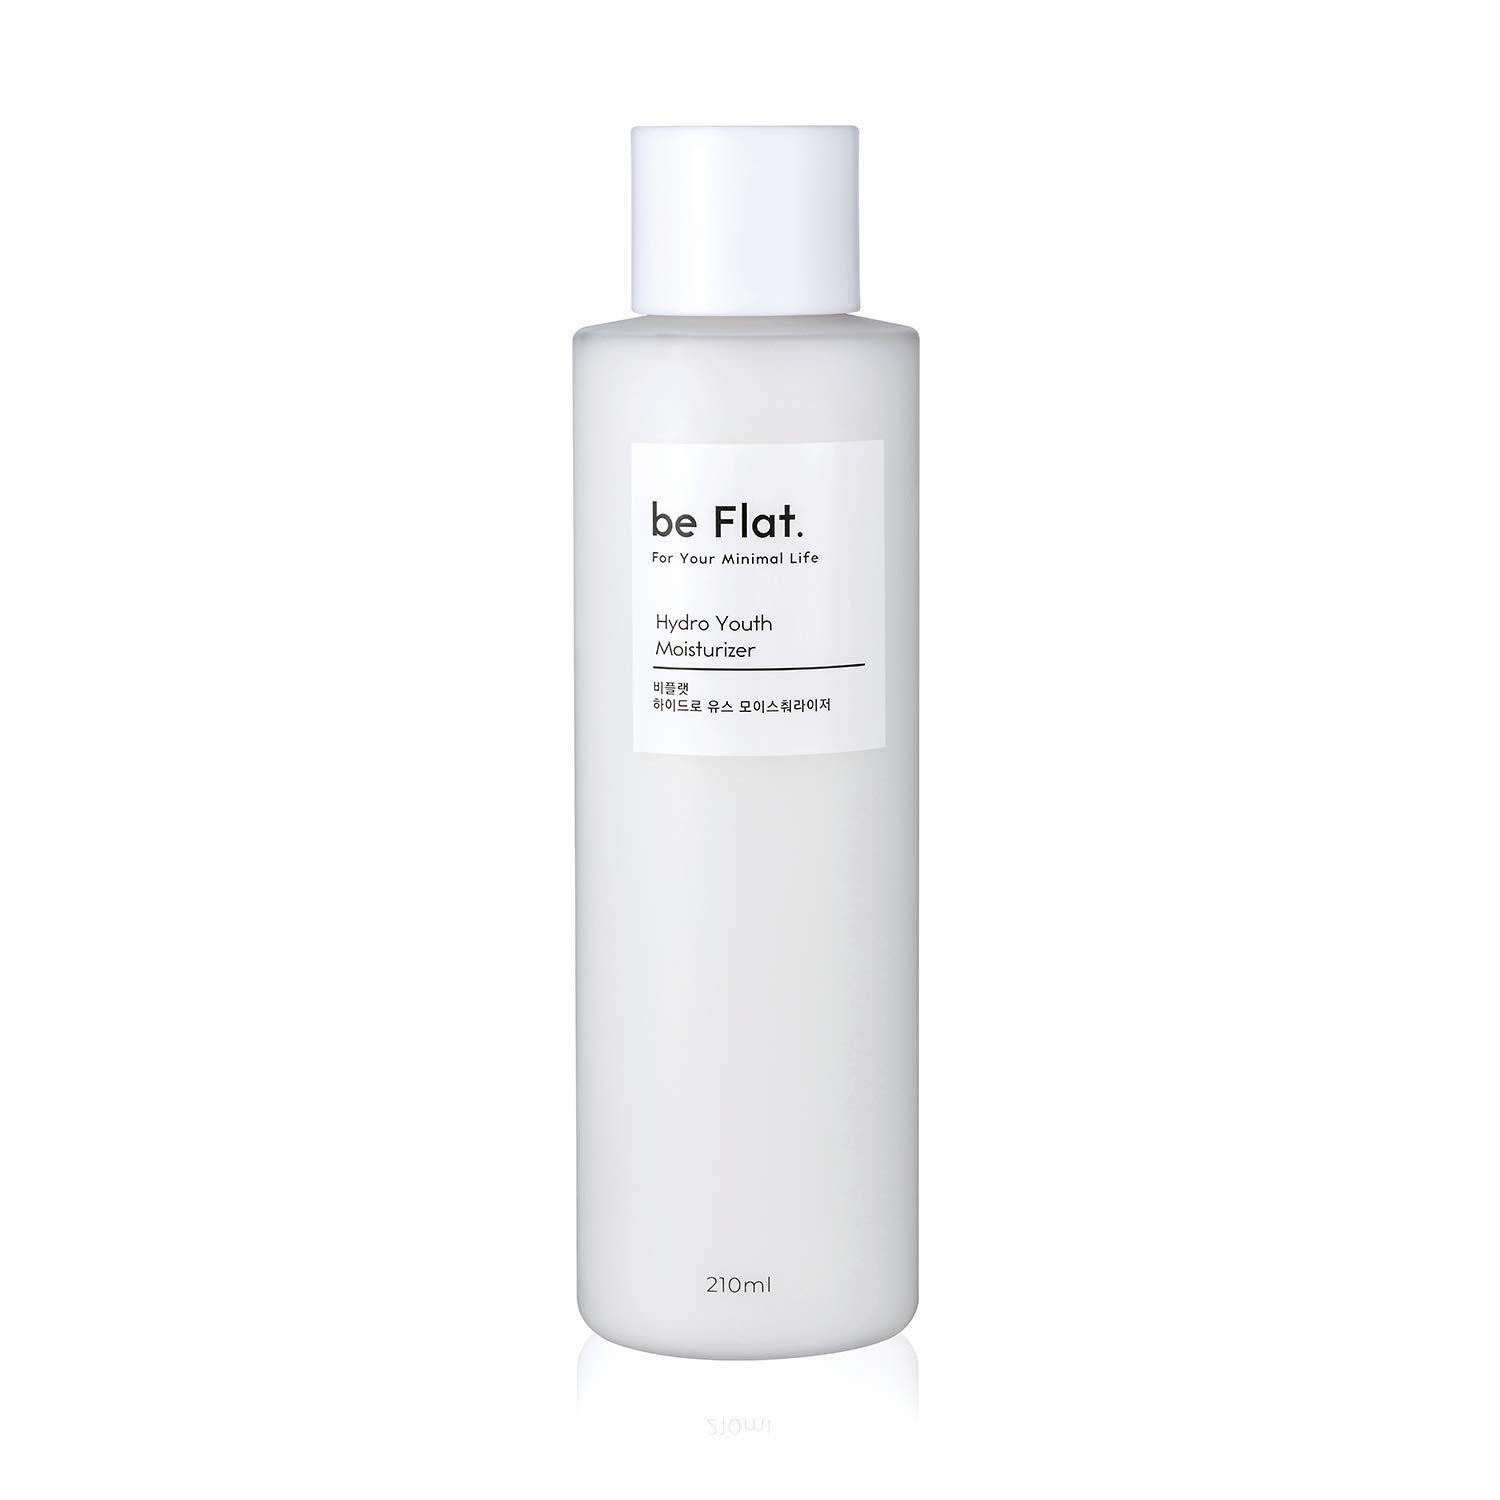 [be Flat] Hydro Youth Moisturizer 7.1 fl.oz, Extra Nourishing & Hydrating Daily Face Moisturizer with Flower and Herb Extracts for Dry, Oily, Acne Prone Skin, Korean Skin Care, Korean Beauty